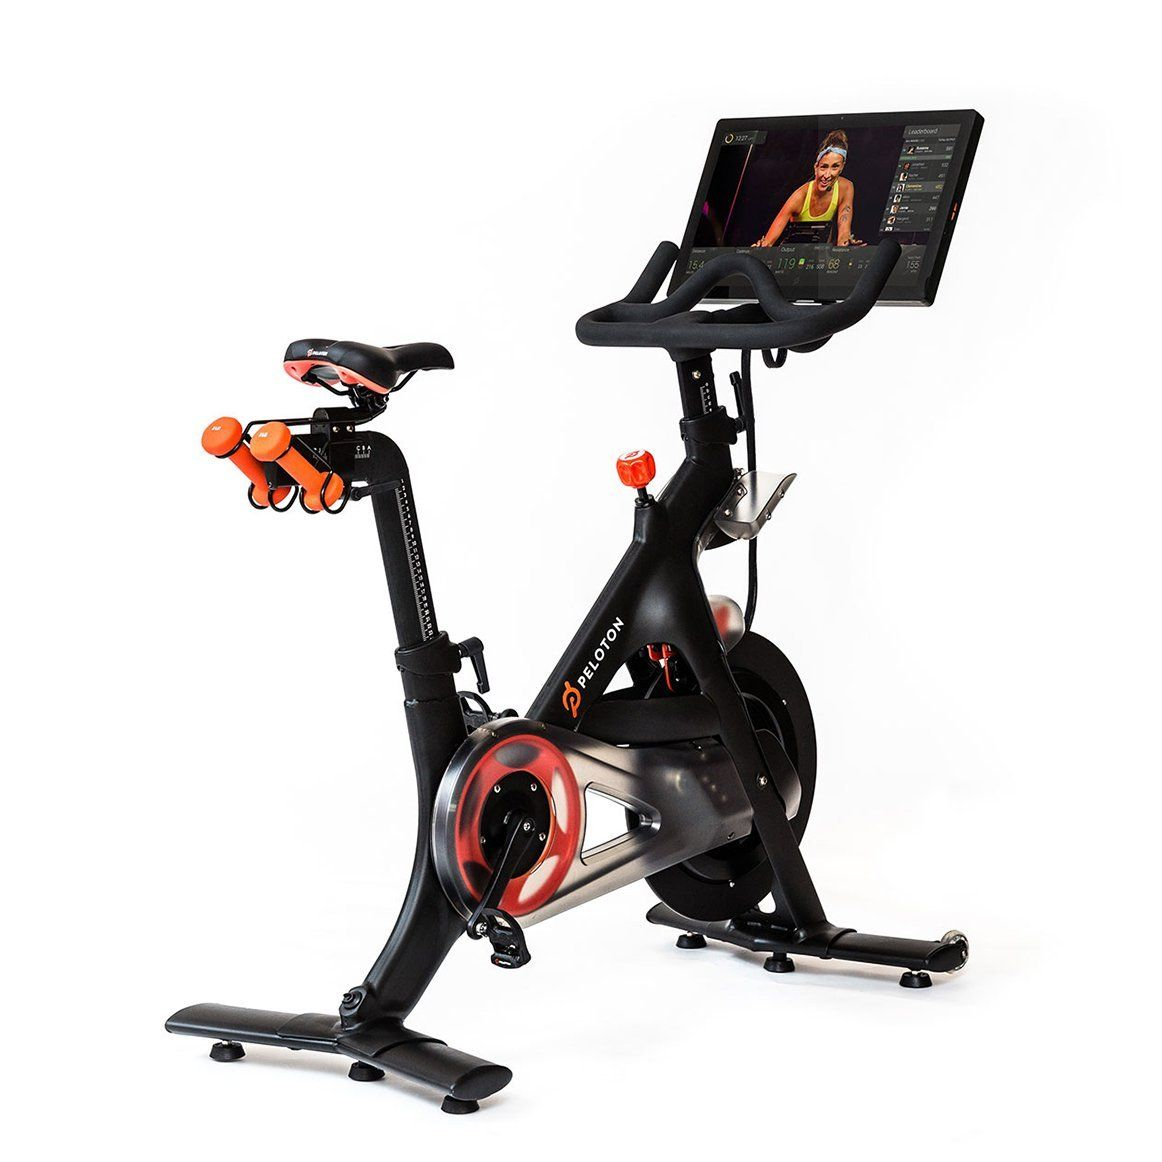 Amazon Com Peloton Indoor Exercise Bike With Hd Touchscreen Sports Amp Outdoors Biking Workout Indoor Bike Workouts Peloton Cycle